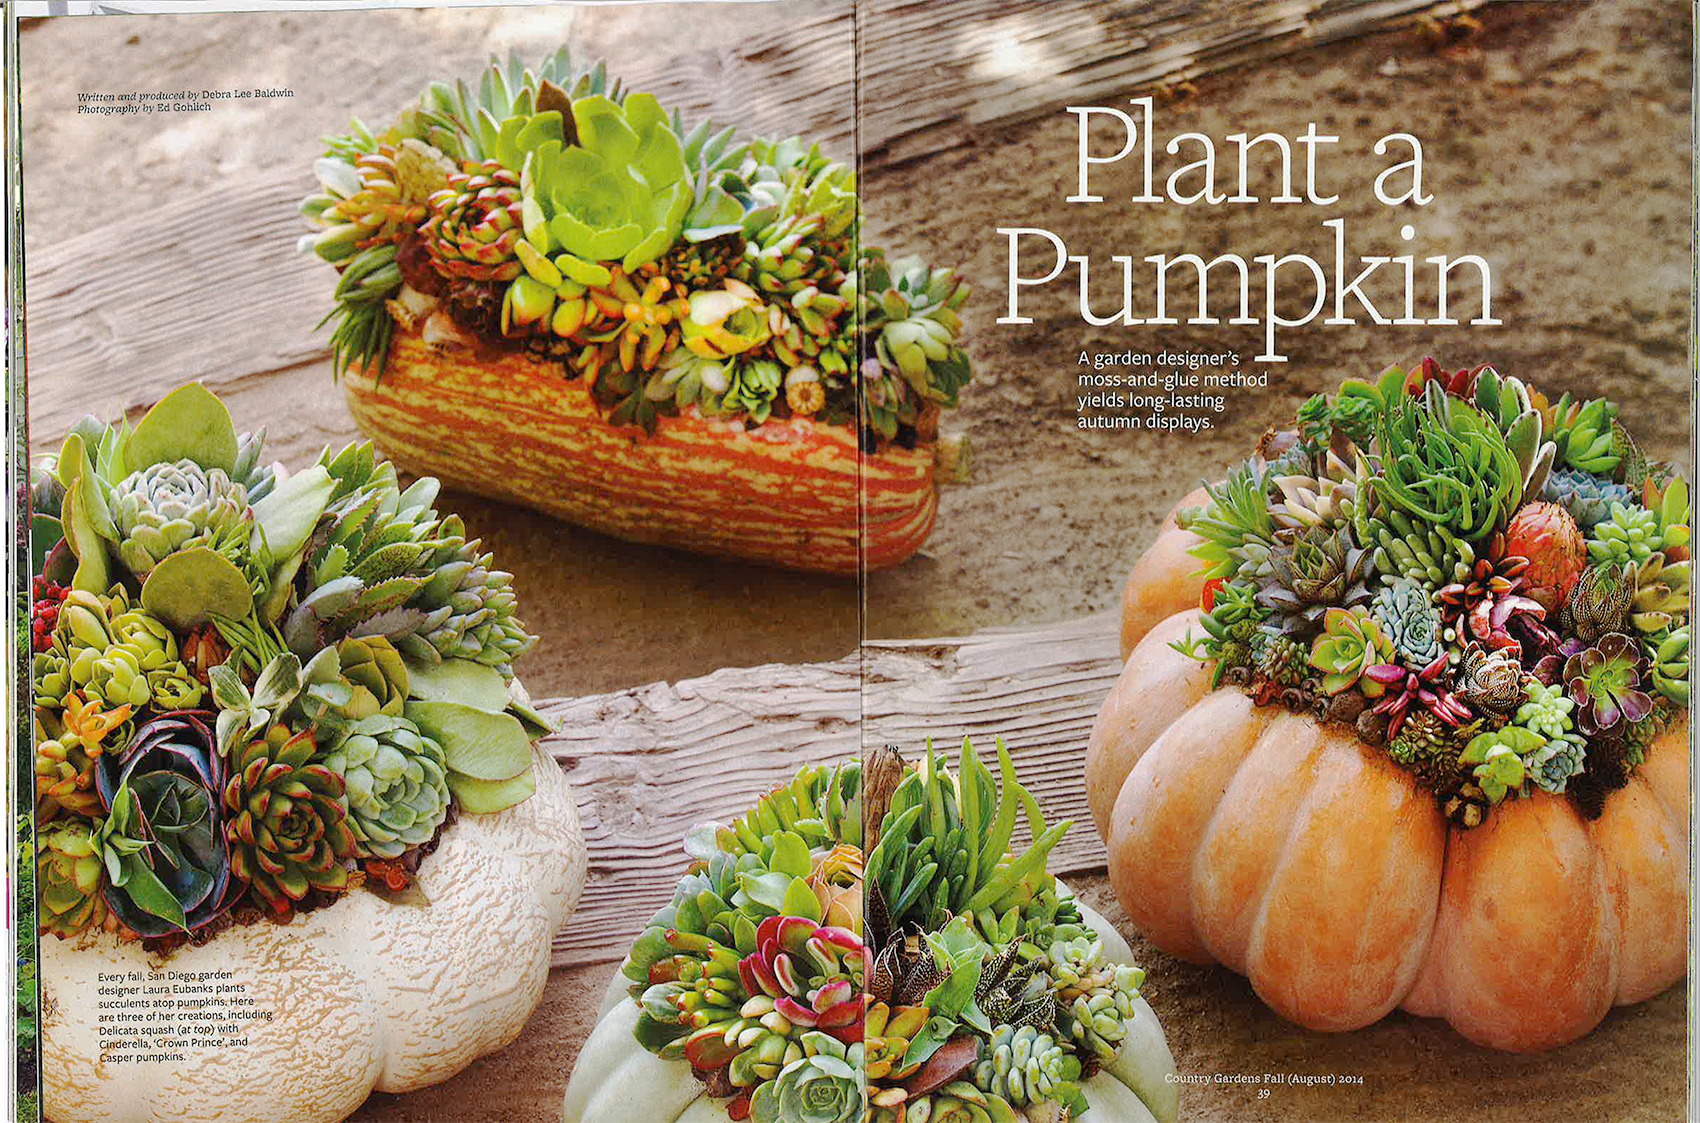 Country Gardens Spread Plant a Pumpkin Laura Eubanks on the Still Growing Gardening Podcast 6ftmama blog